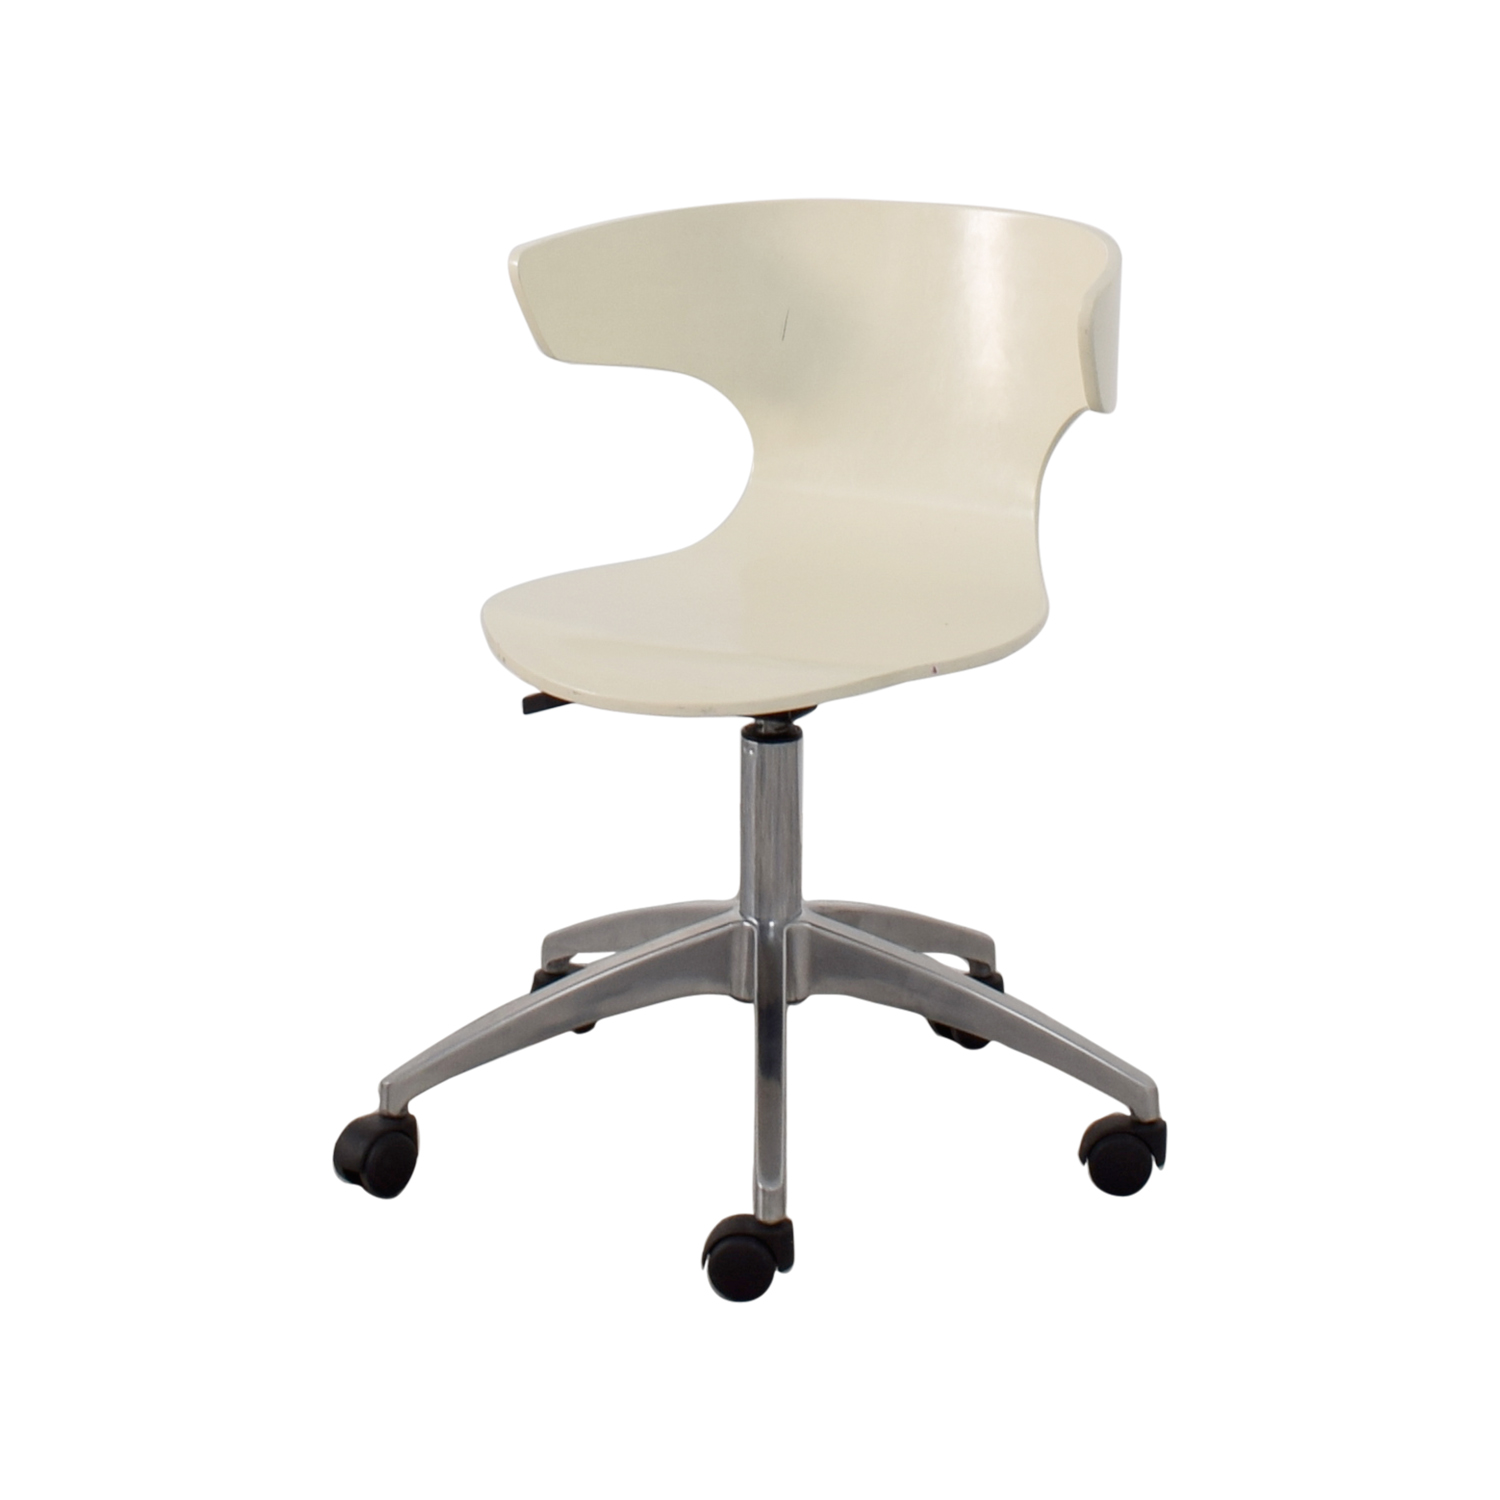 White Modern Chair 63 Off West Elm West Elm White Modern Chair With